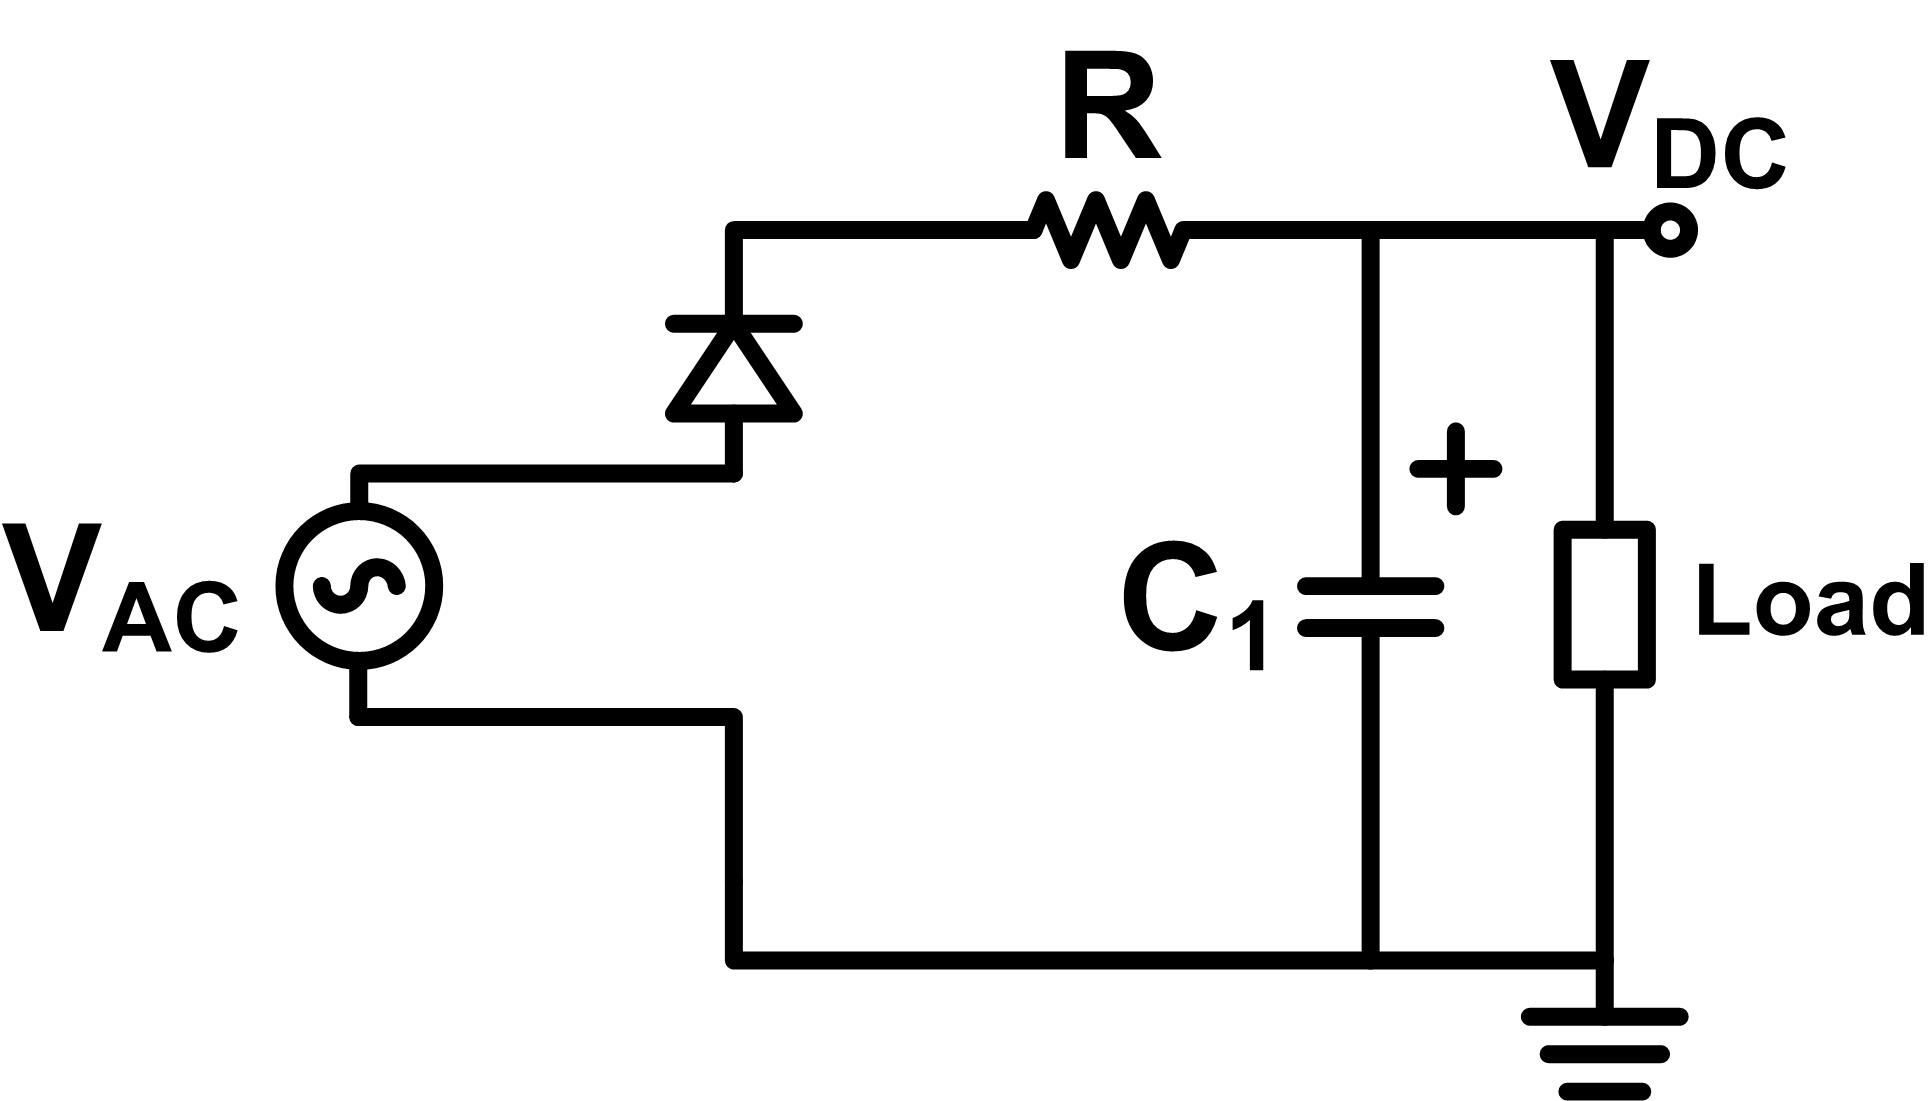 power tips  how to limit inrush current in an ac  dc power